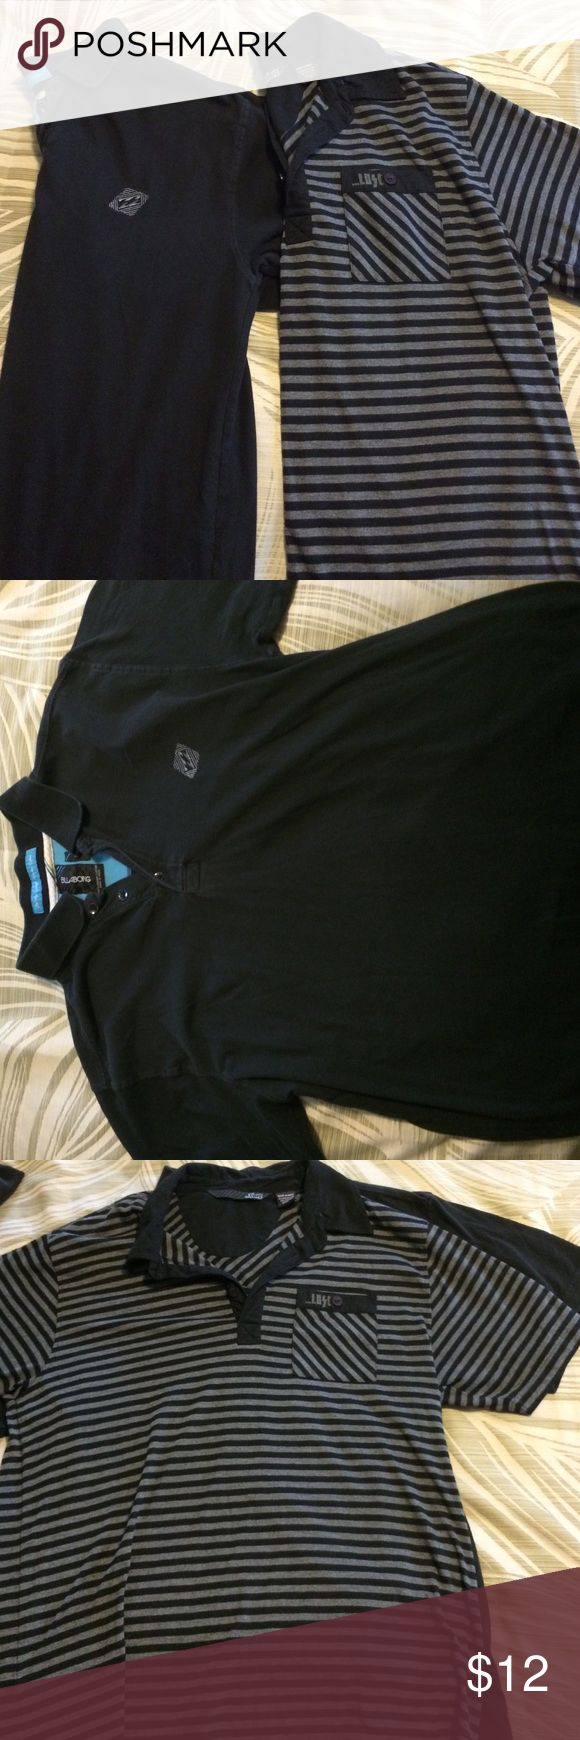 Set of 2 Men's Cotton Polos selling two cotton polo shirts for Men. Size small. The black shirt is Billabong, the striped is ...Lost surfboards. Great condition. Can be sold together or separately... Price posted is for both Billabong Shirts Polos